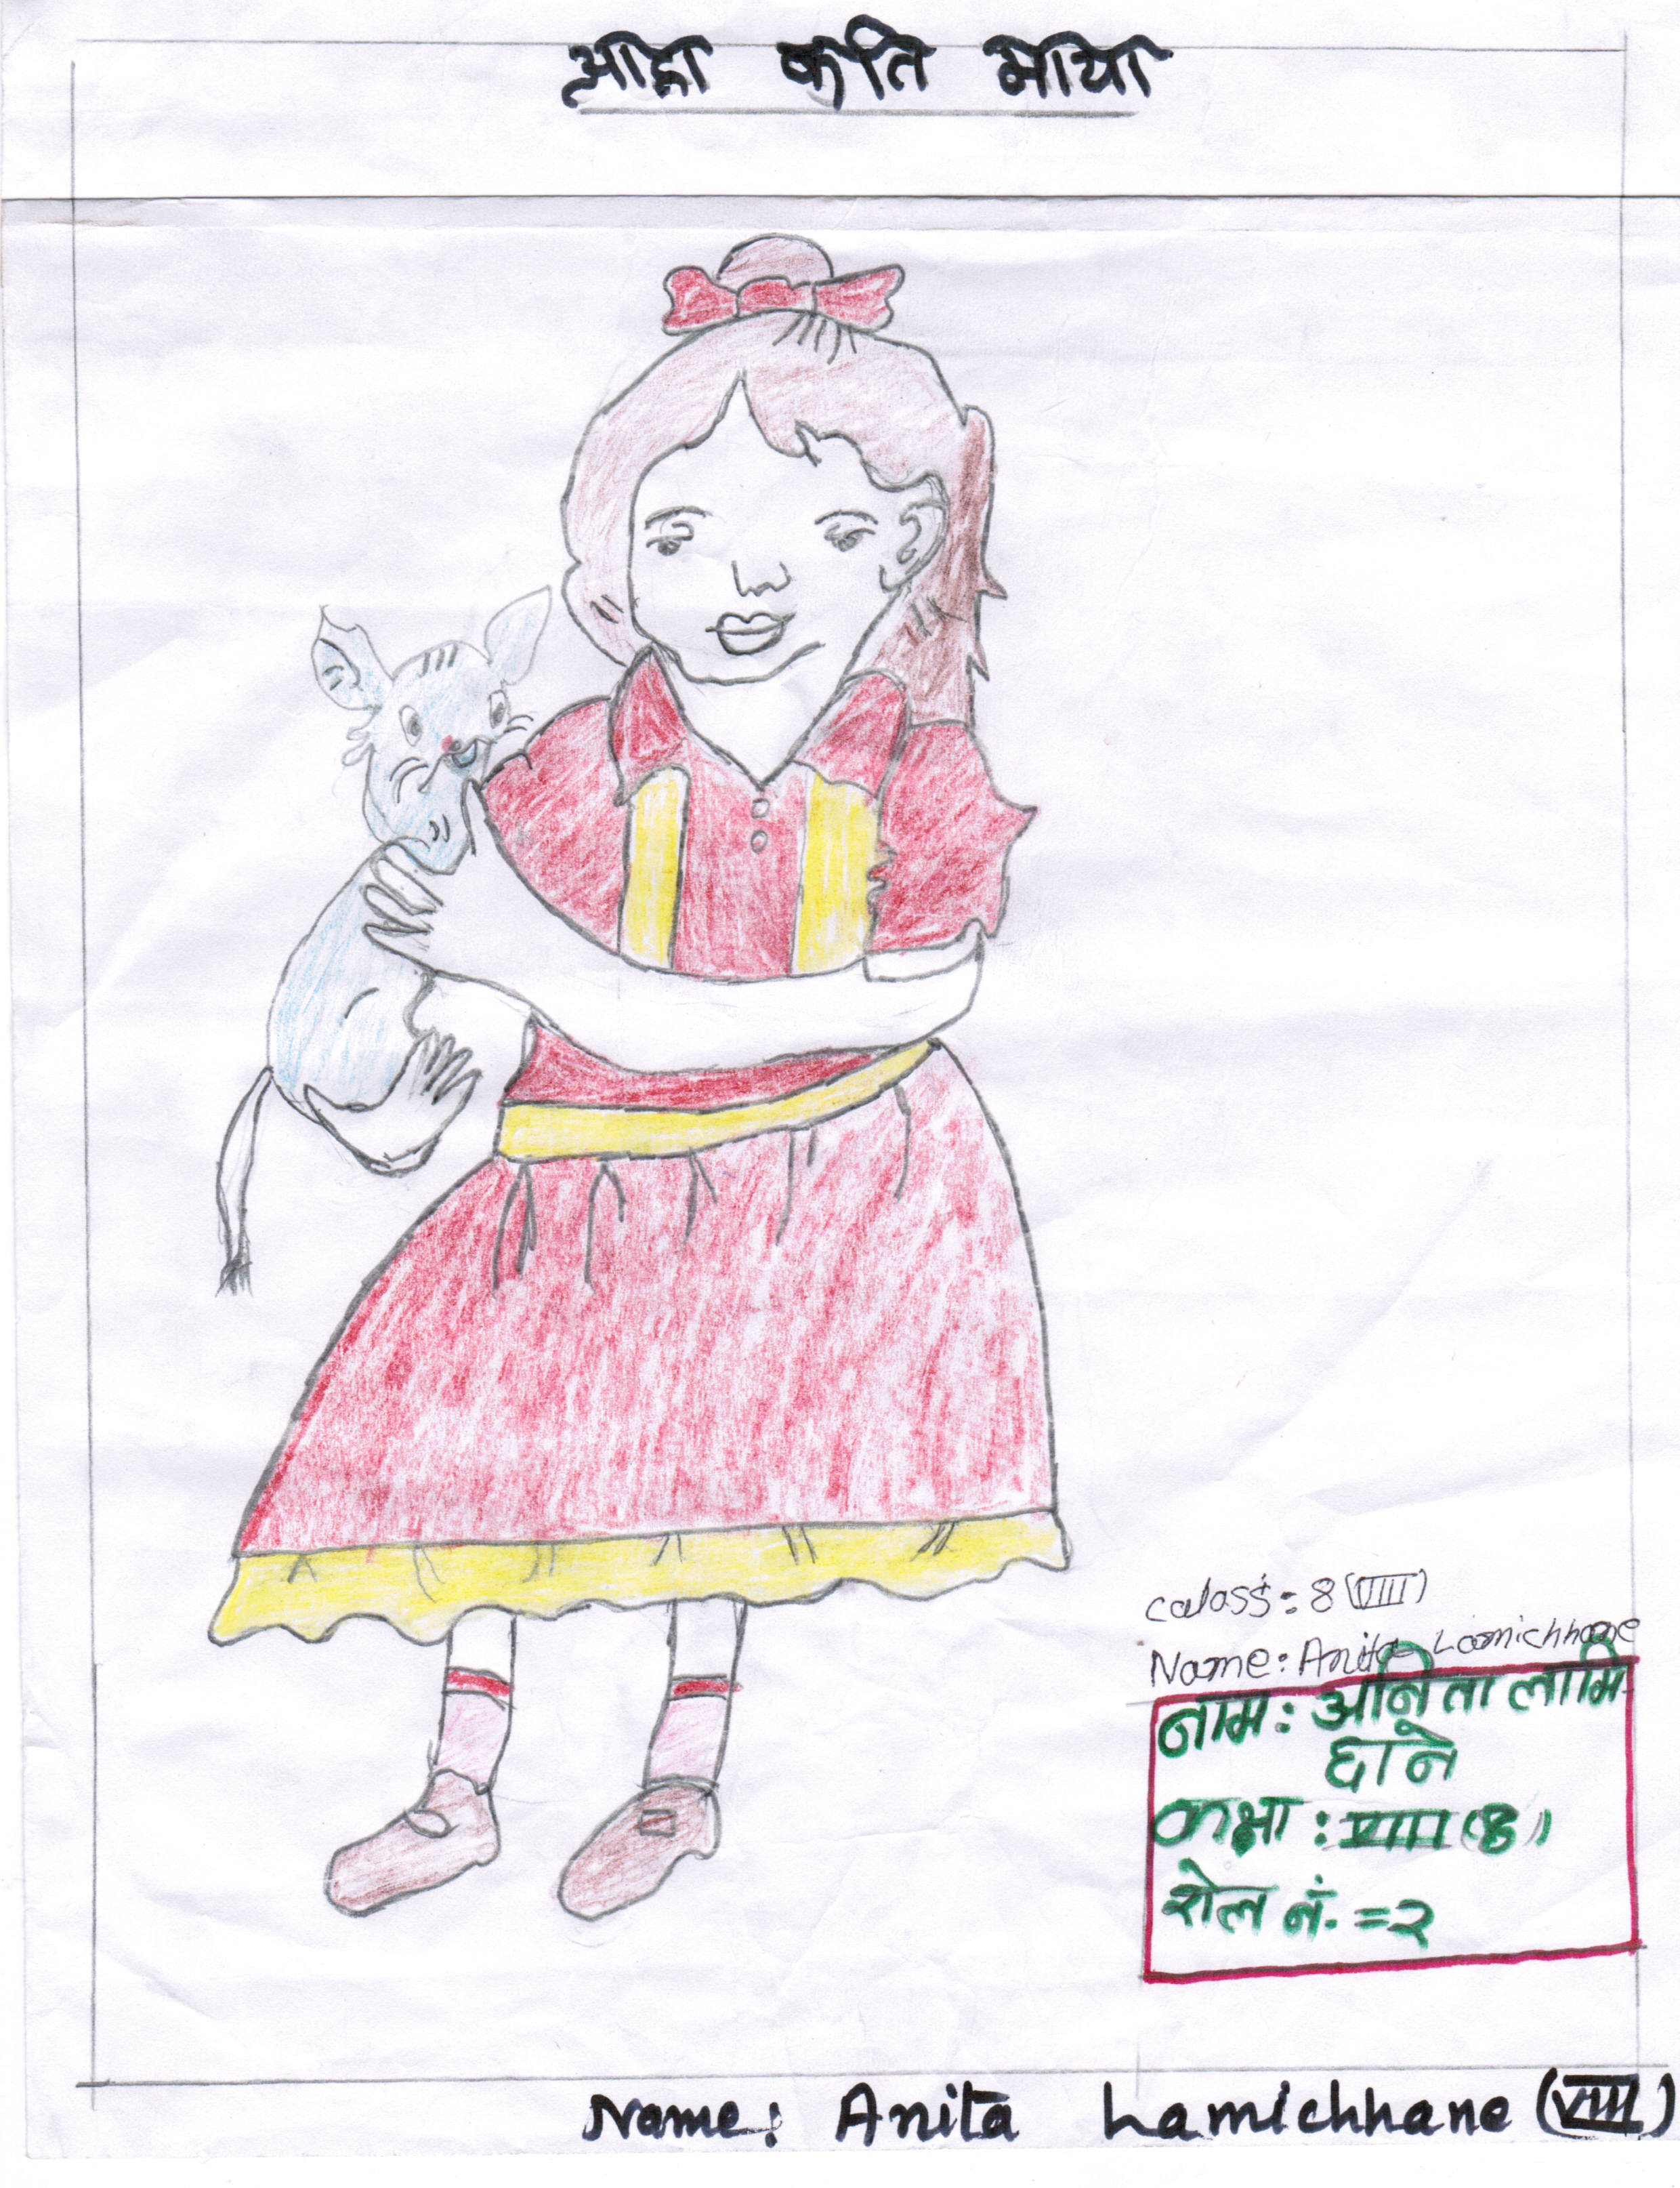 Anita, Grade 8, draws a beautiful girl holding her pet